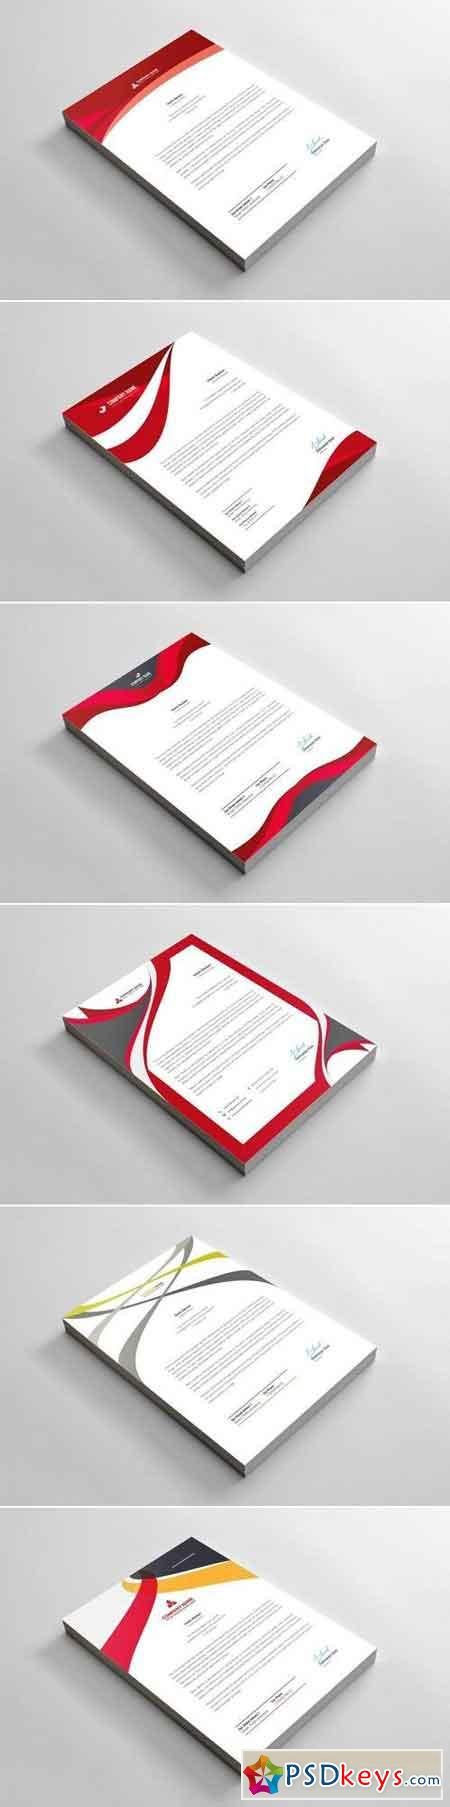 Letterhead Bundle 6